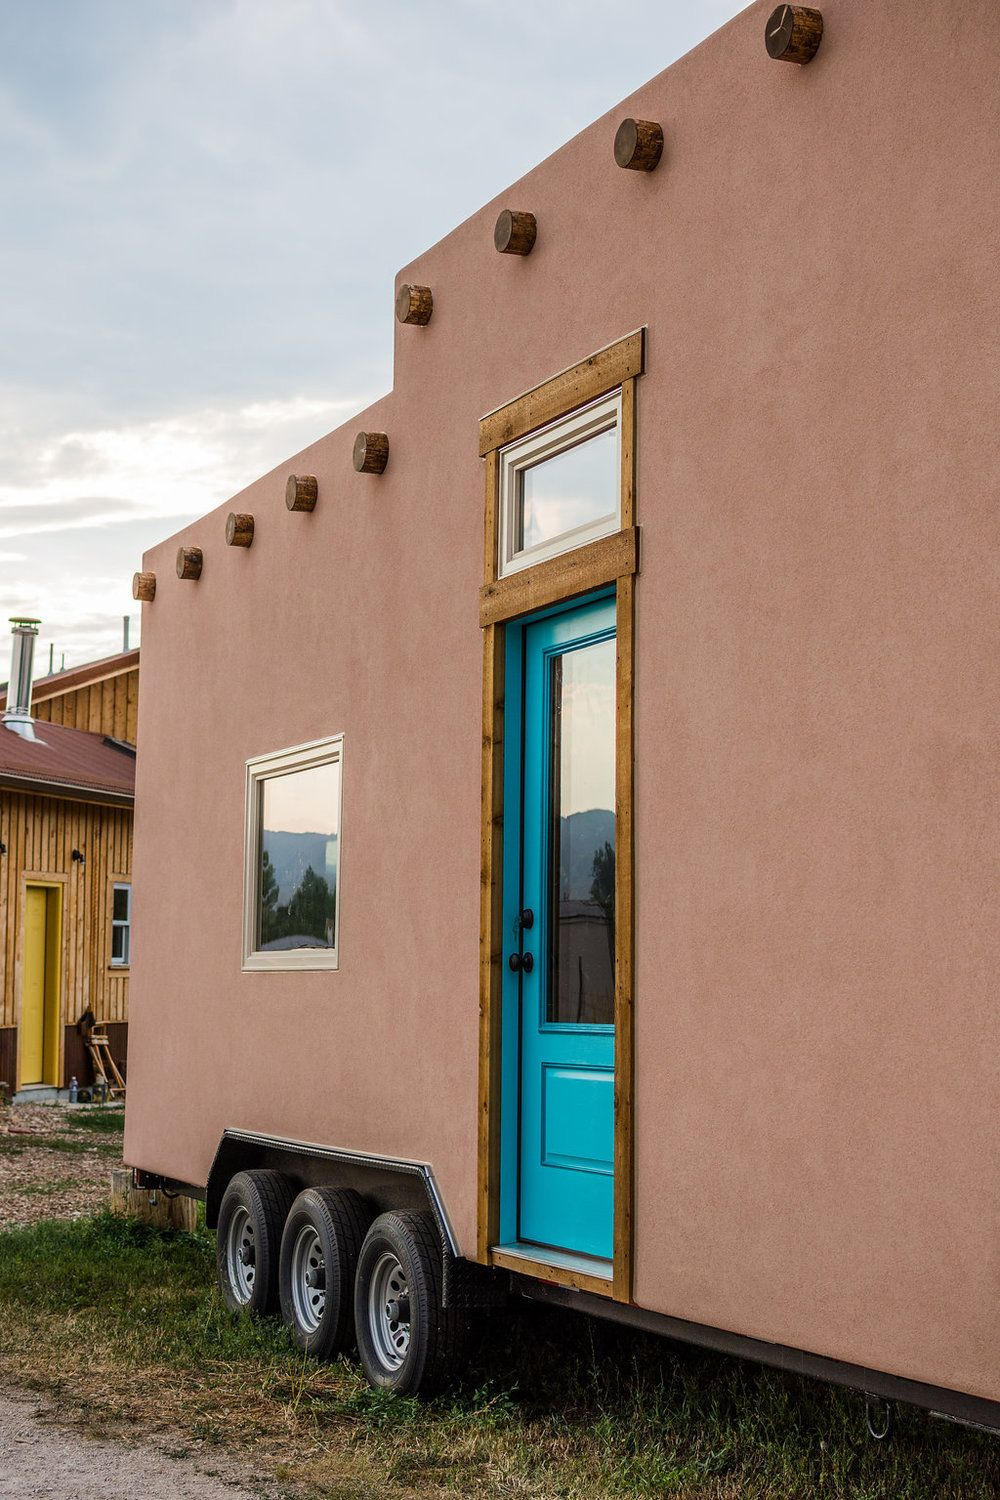 Adobe Tiny House by Mitchcraft | Tiny House Living | Pinterest ...